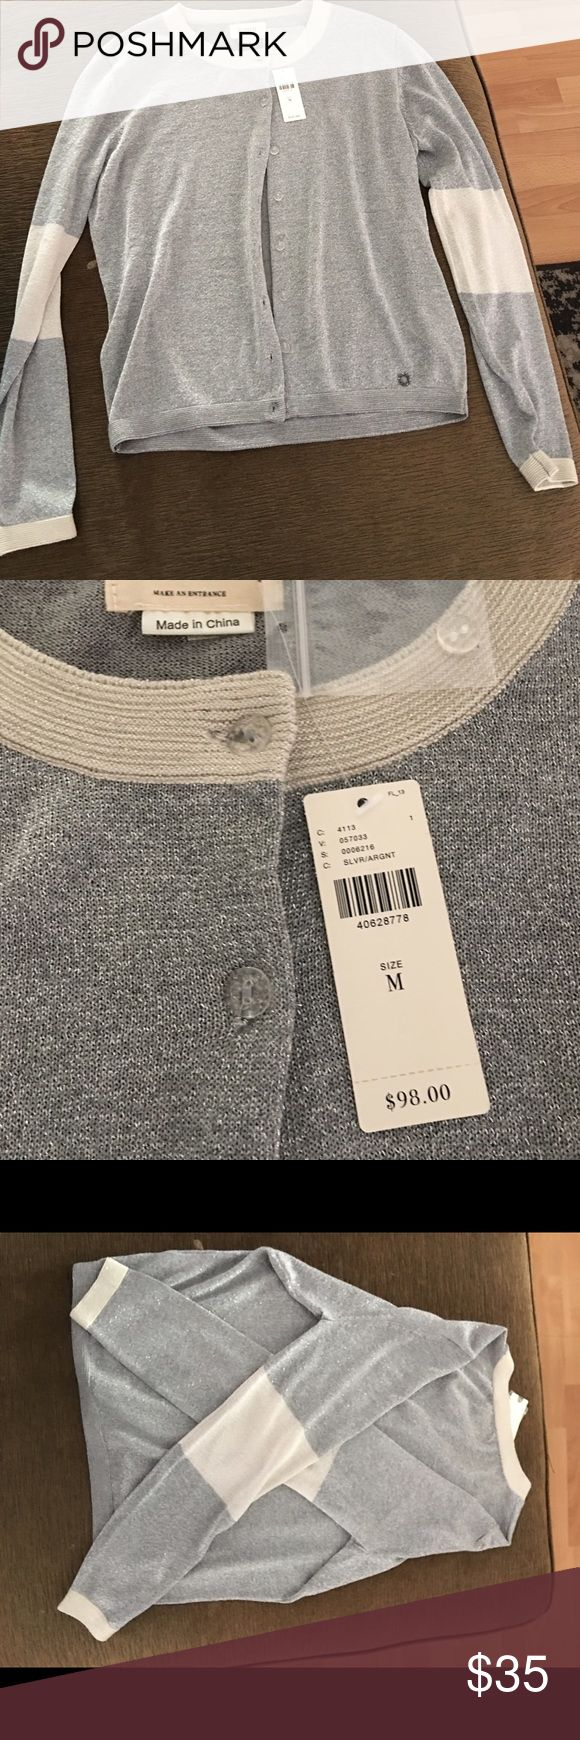 Silver Cardigan/white elbow patches- Size M Anthropologie brand...Super cute, soft classy cardigan. Silver with white elbow patches that go all the way around. You can dress up or wear it casually. Anthropologie Tops Button Down Shirts